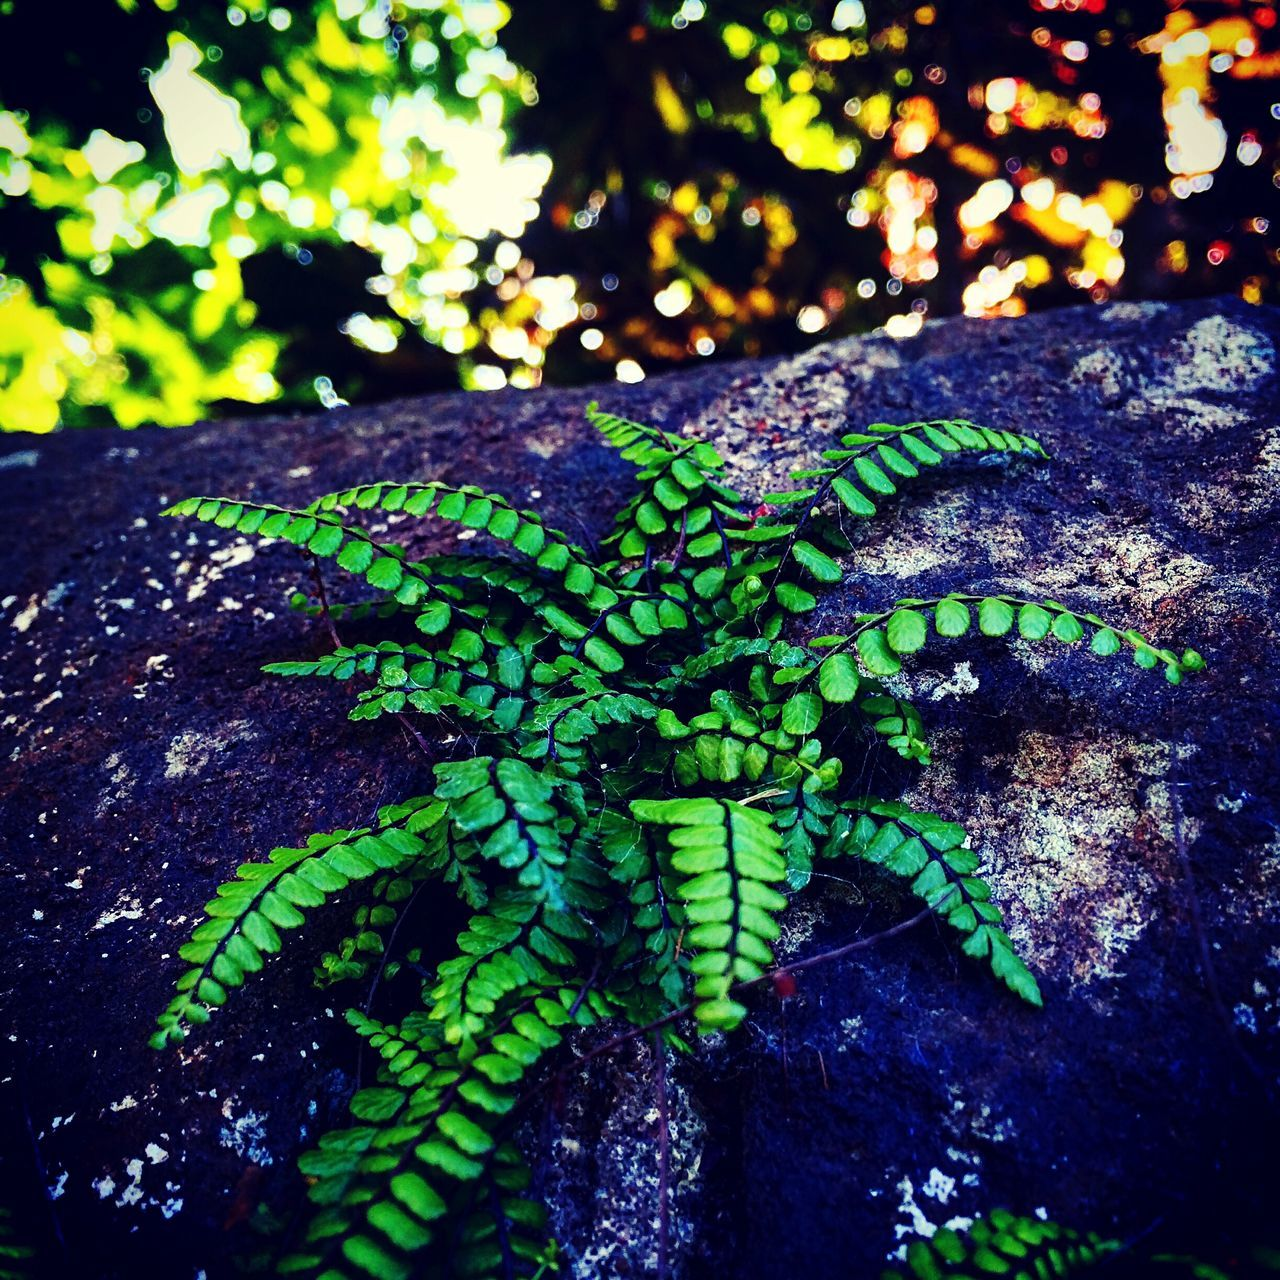 Close-Up Of Fern Growing On Rock